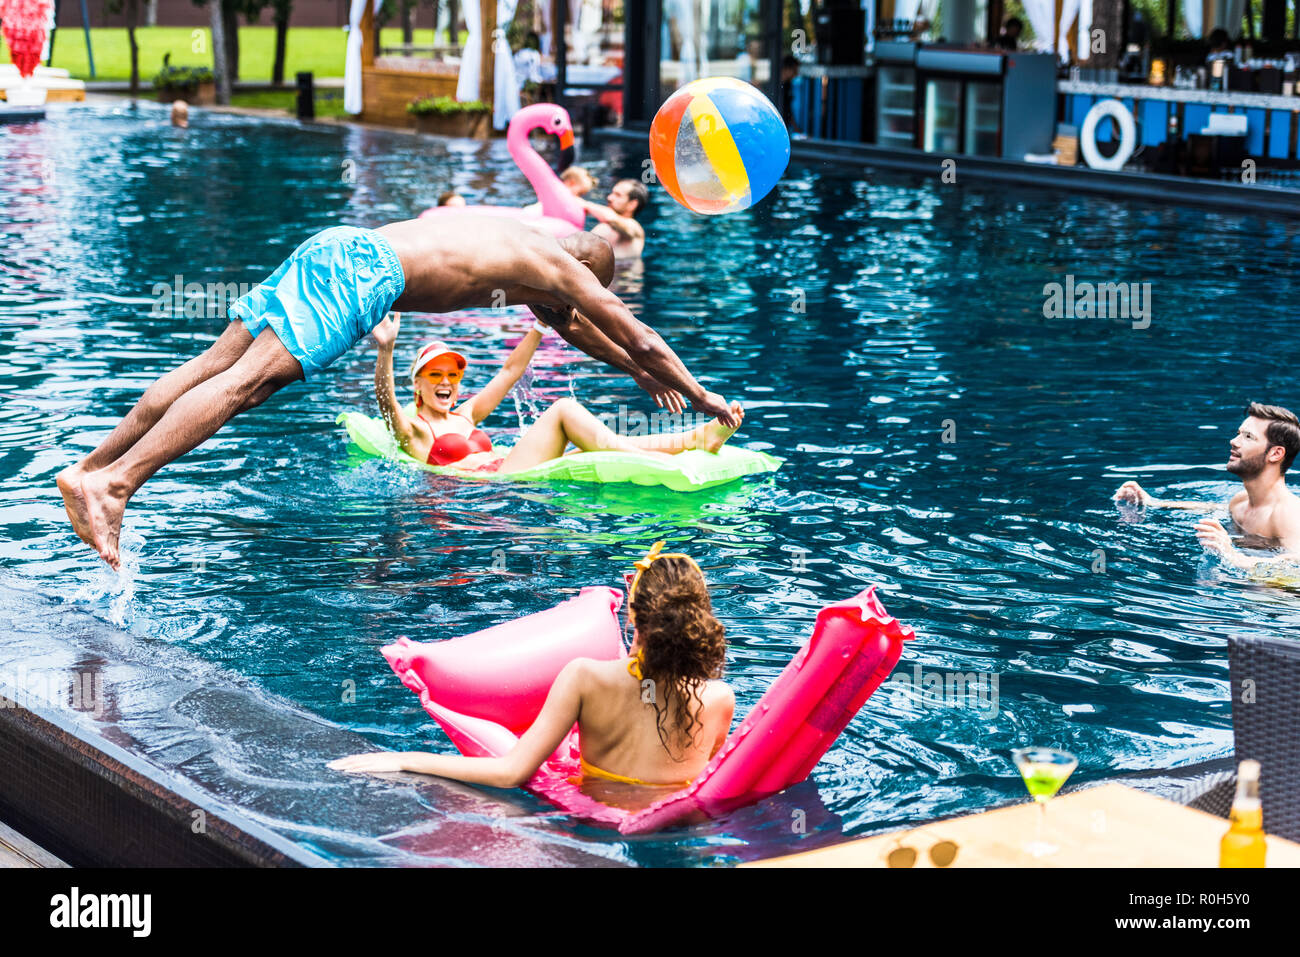 young man jumping into swimming pool while his female friends resting on inflatable mattresses - Stock Image